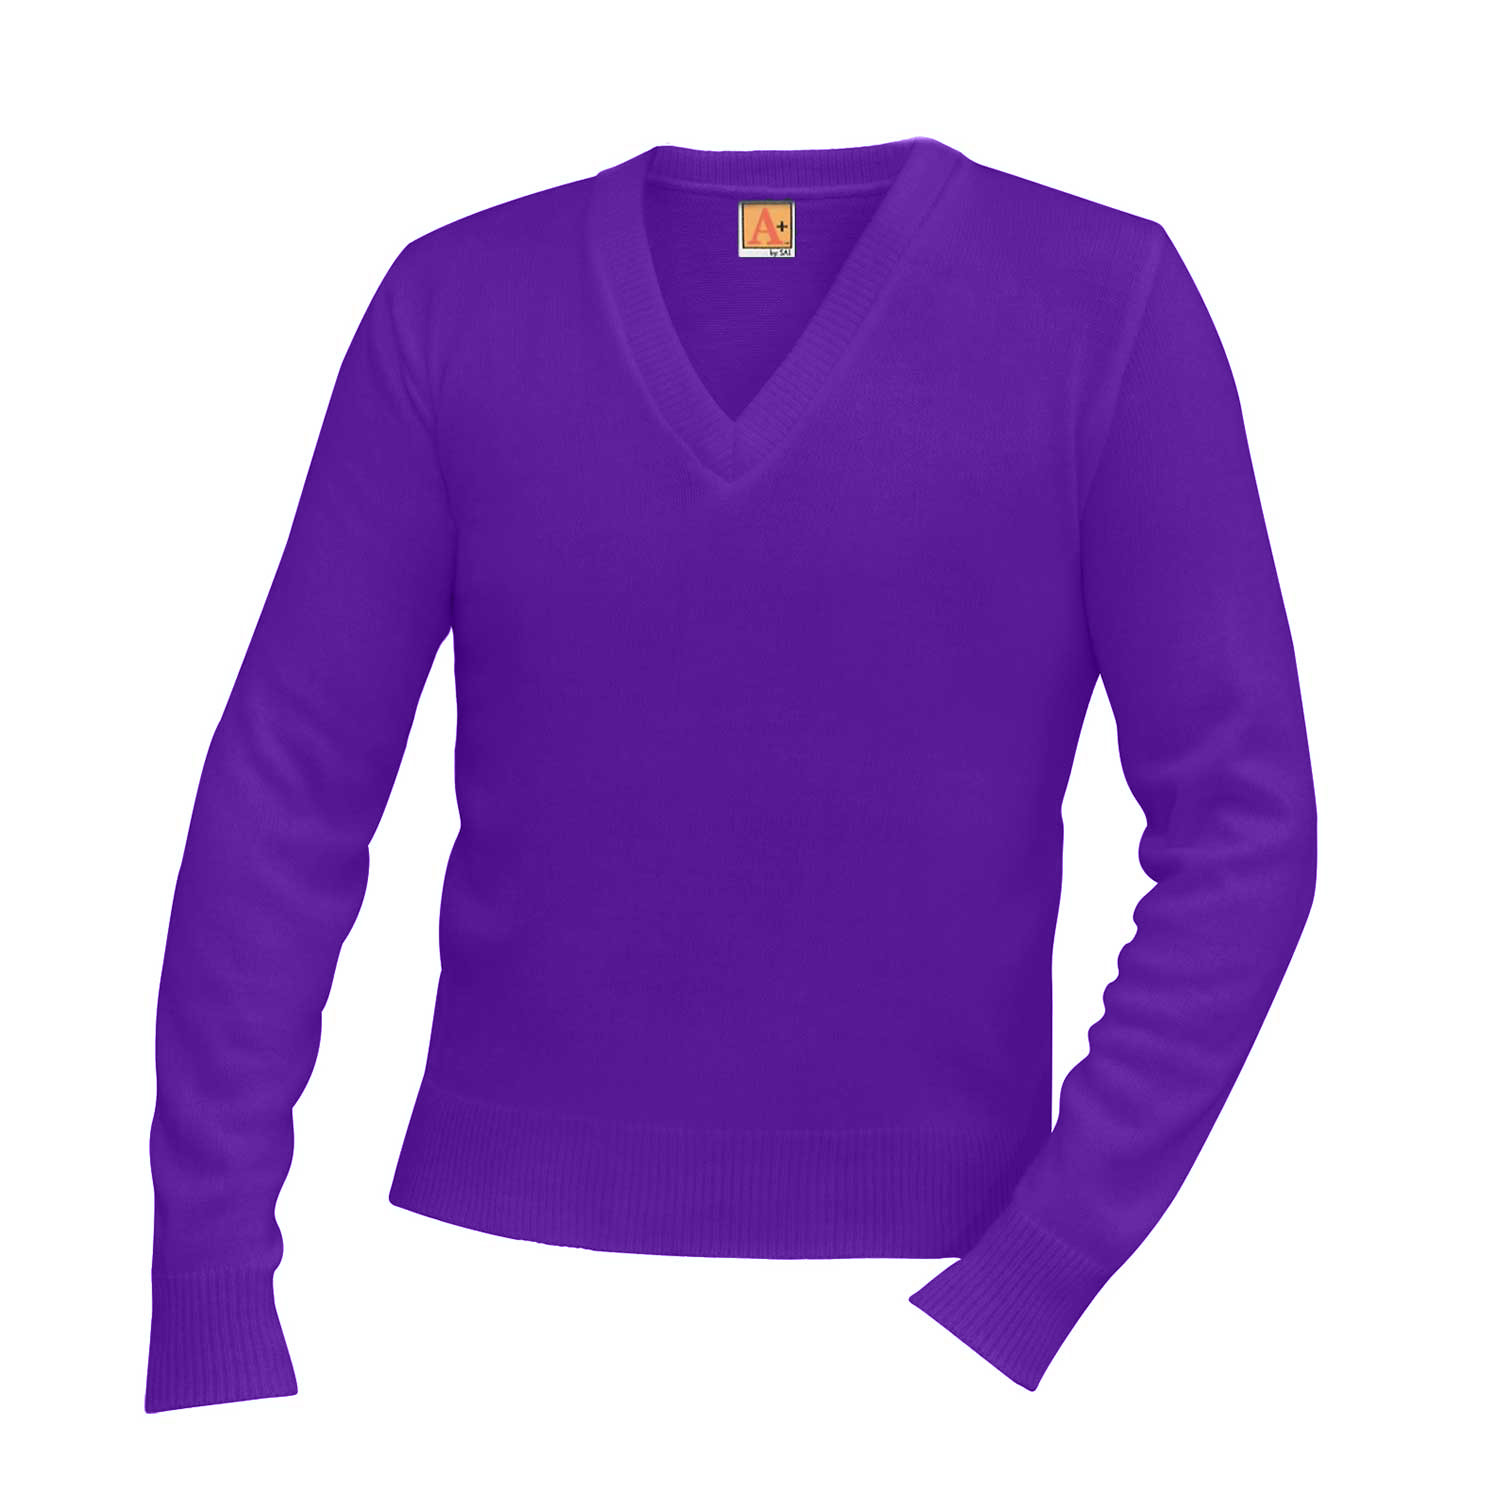 HFHS Pullover Sweater